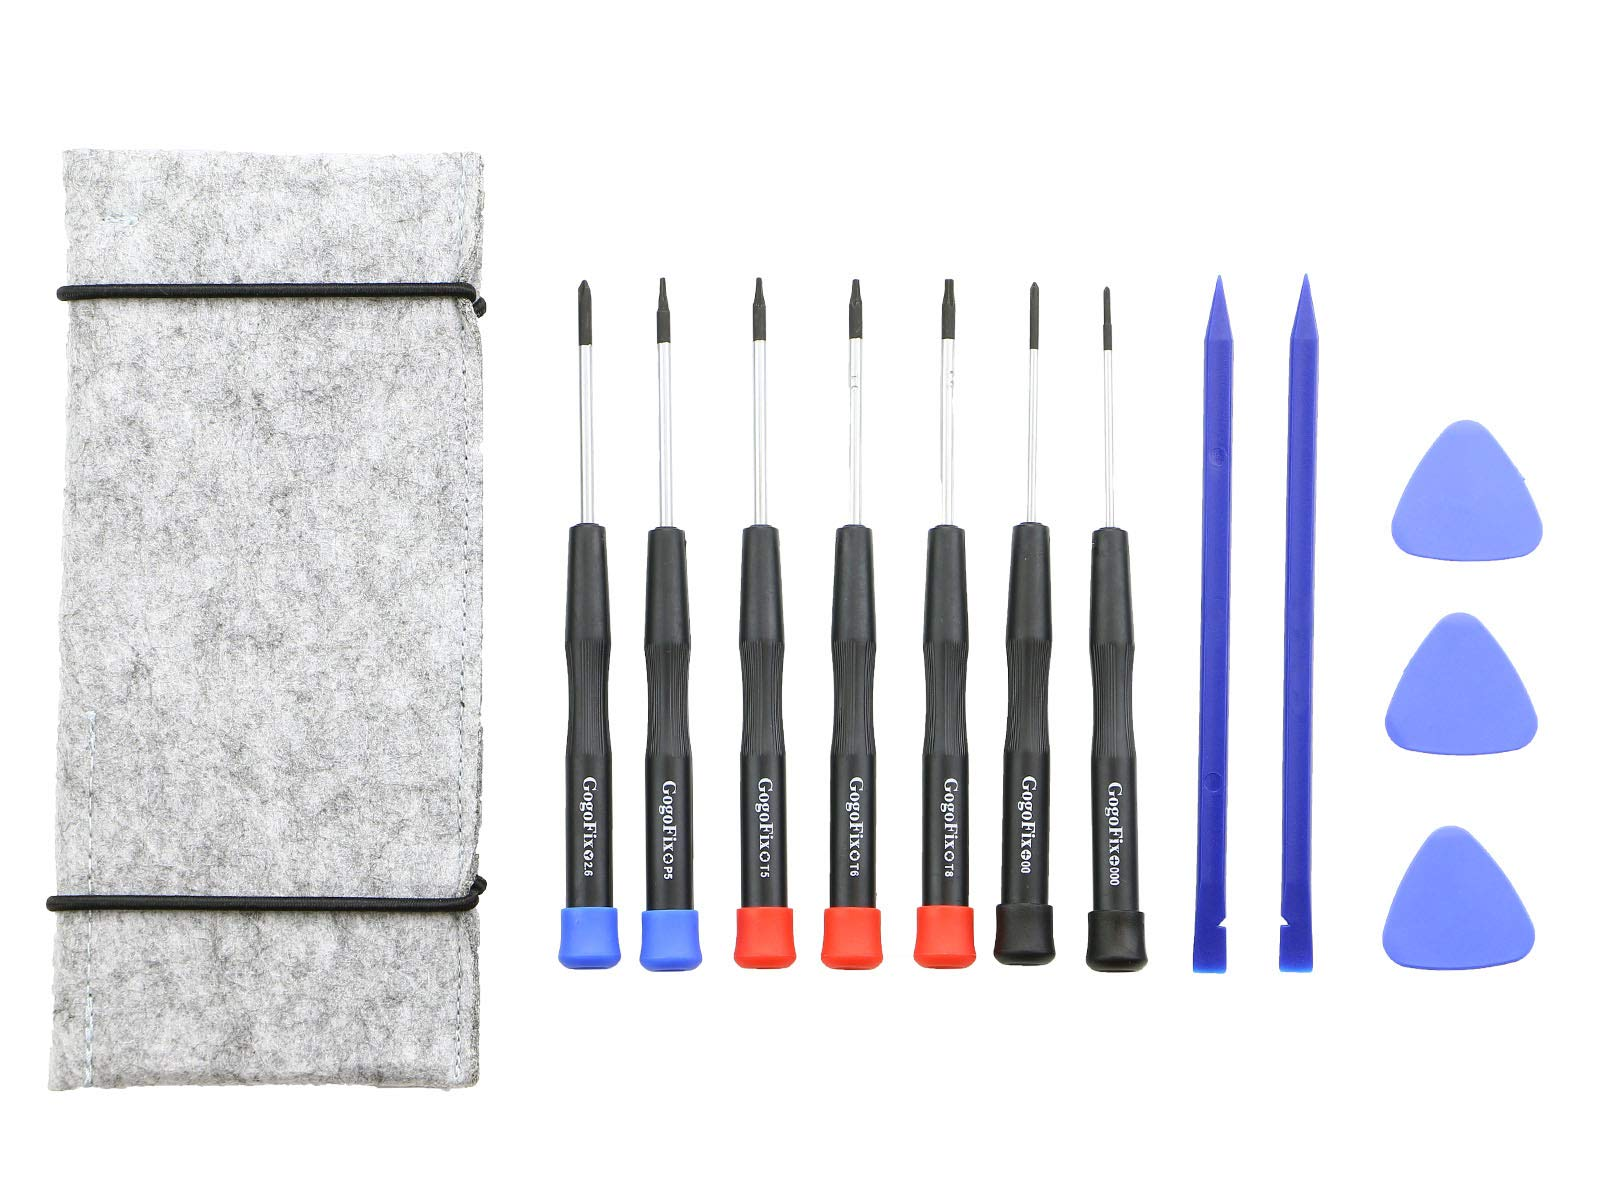 12 Pieces MacBook Repair Tool Kit , Precision Screwdrivers, Opening pick, Spudger and Tool Bag for MacBook Air, Retina, Pro